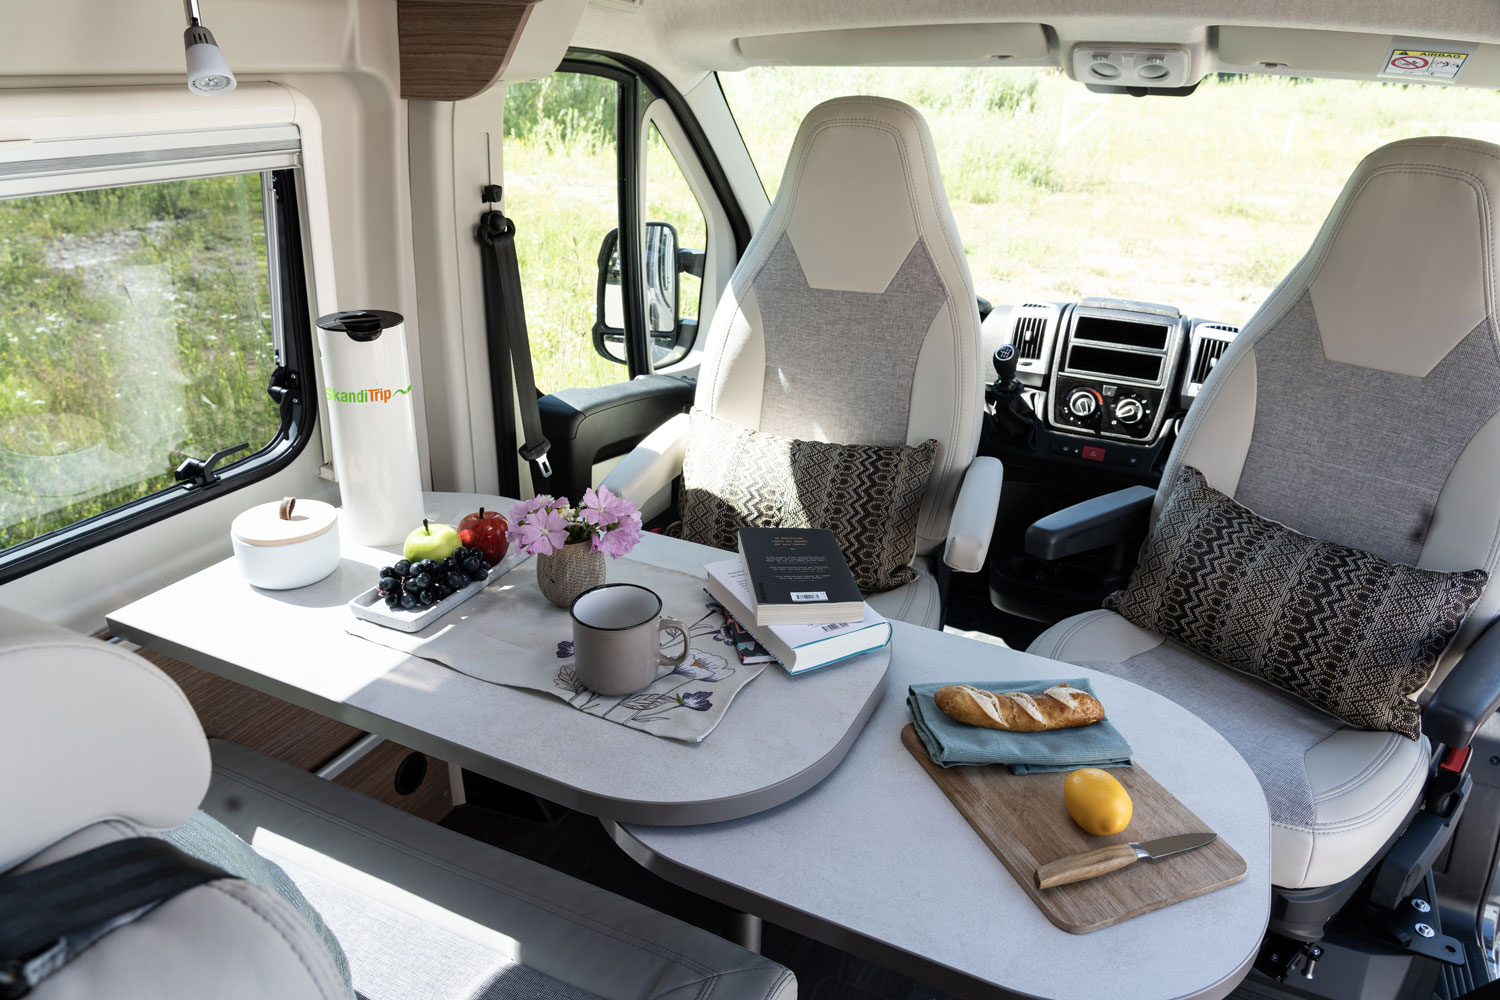 SkandiTrip petit camping car entrance and living room seats